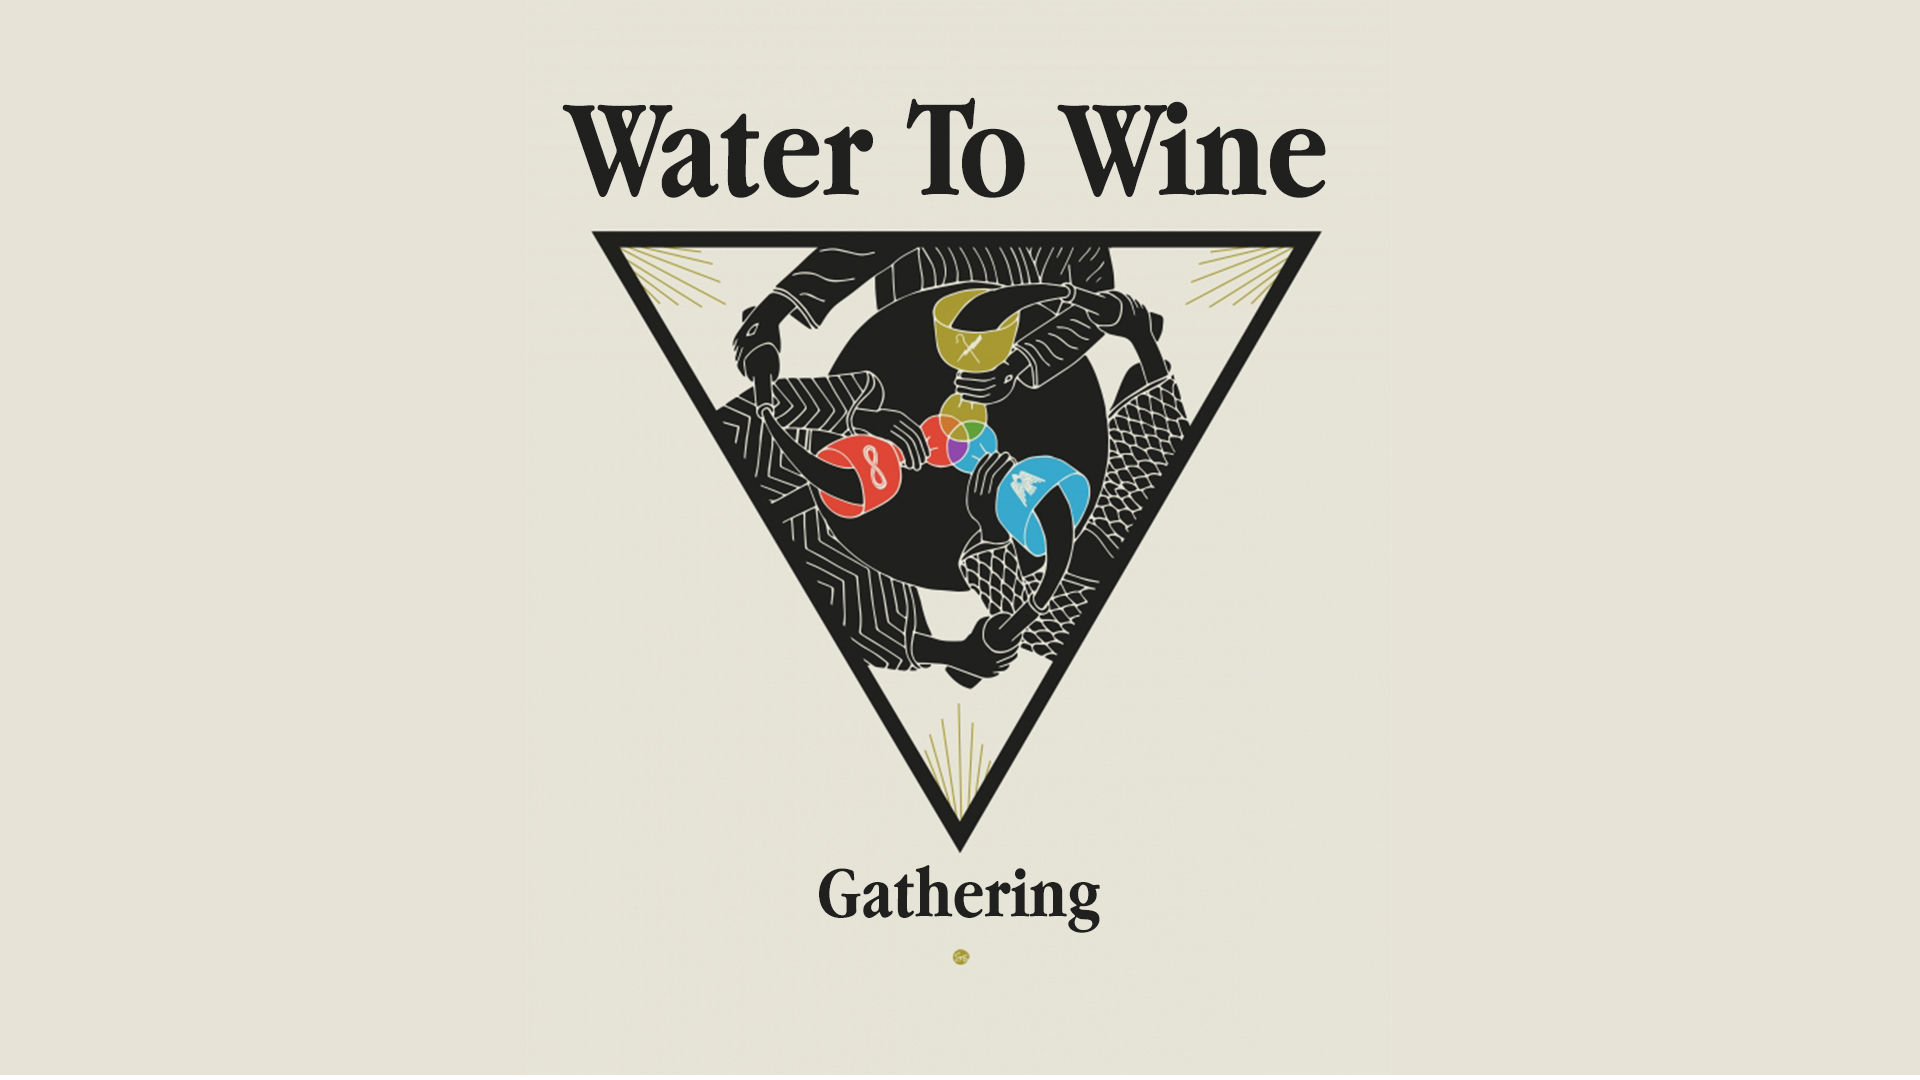 Water to wine gathering 1920x1080